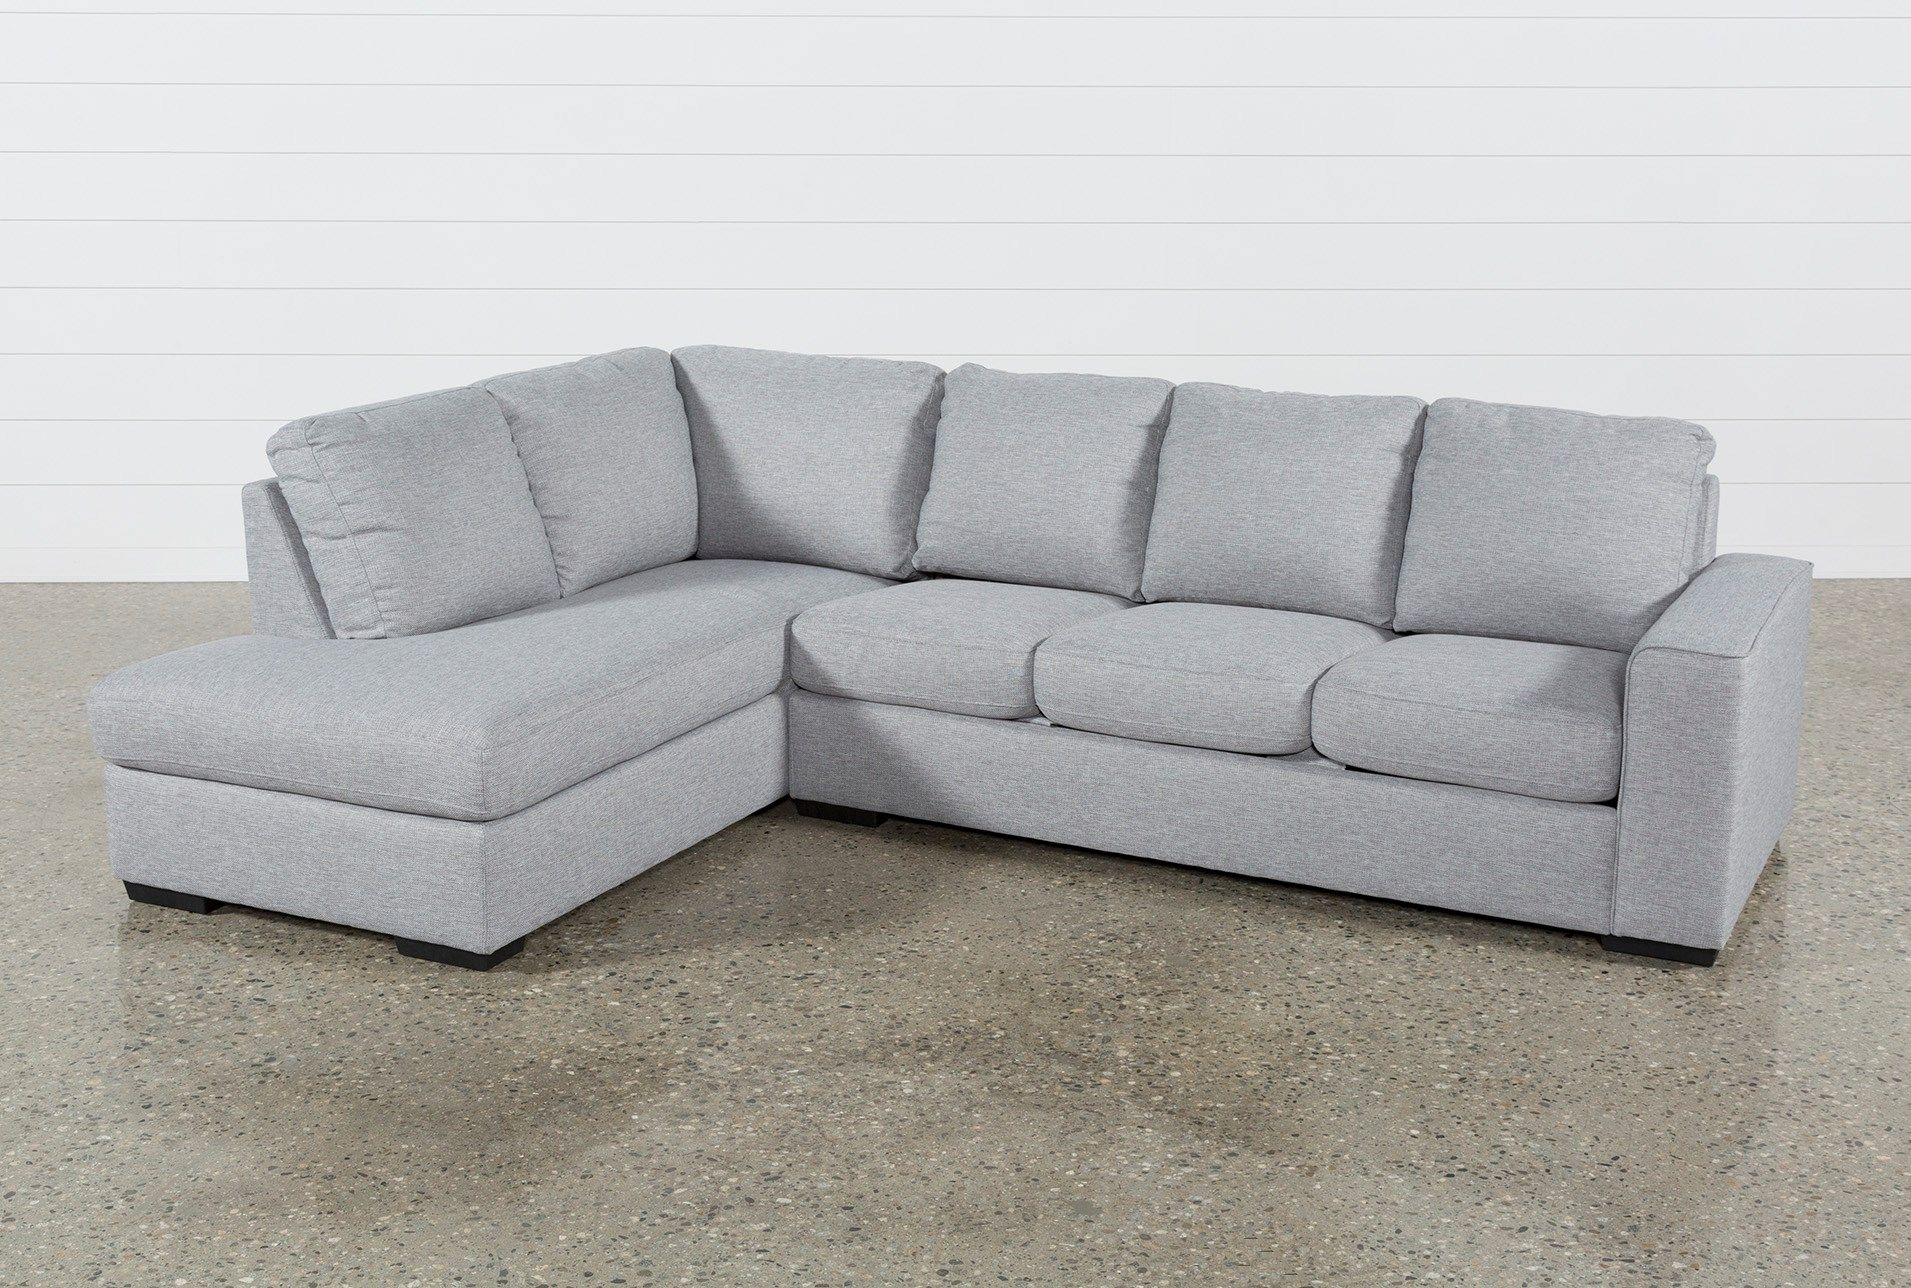 Lucy Grey 2 Piece Sectional W/laf Chaise | Tx House | Pinterest intended for Aquarius Dark Grey 2 Piece Sectionals With Laf Chaise (Image 20 of 30)